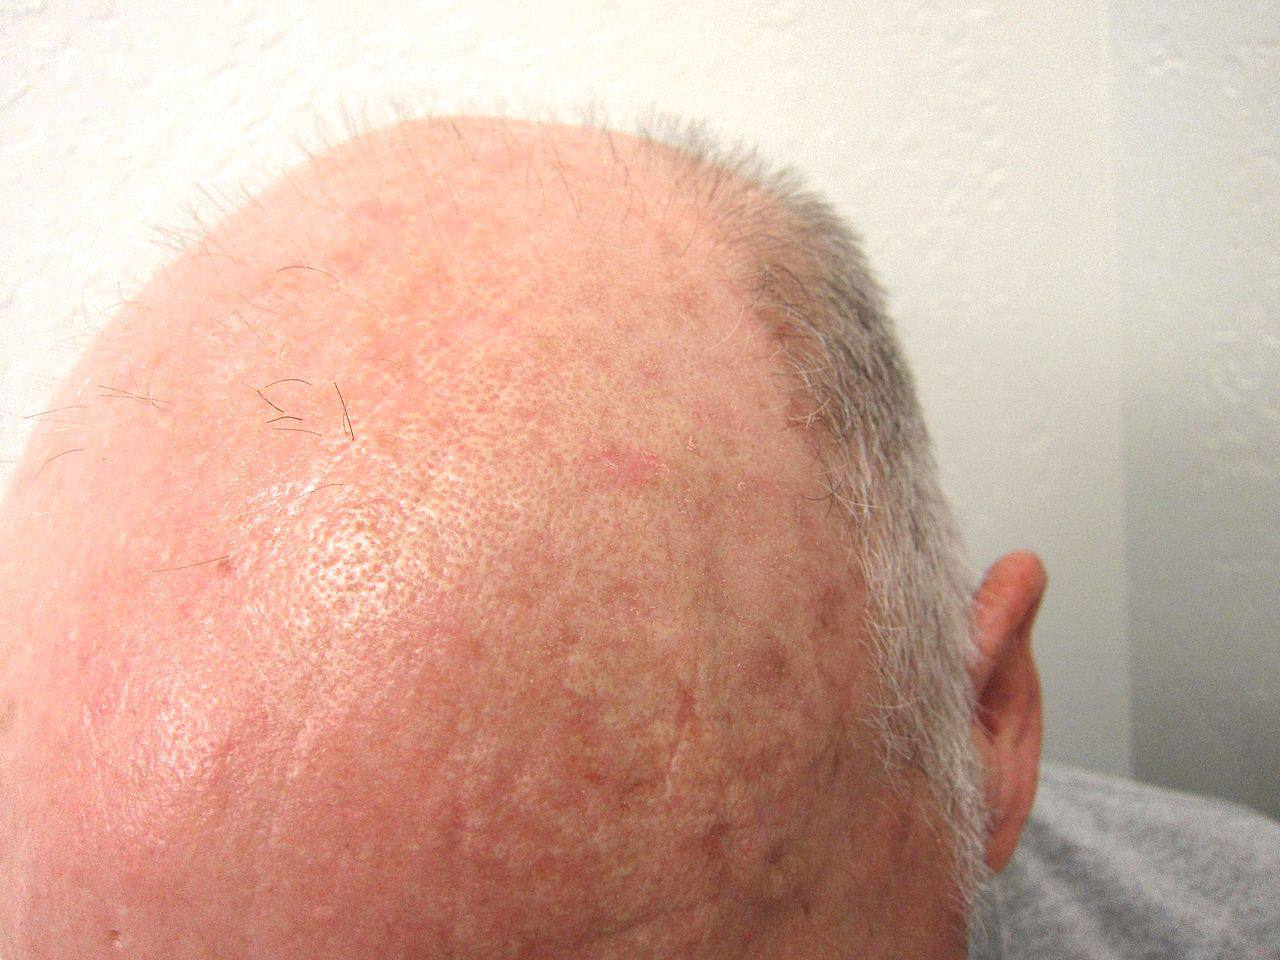 Actinic keratoses are precancerous lesions common on sun-exposed areas of the skin. They can assume many different appearances, but this image shows a very common presentation of AKs on a balding head.